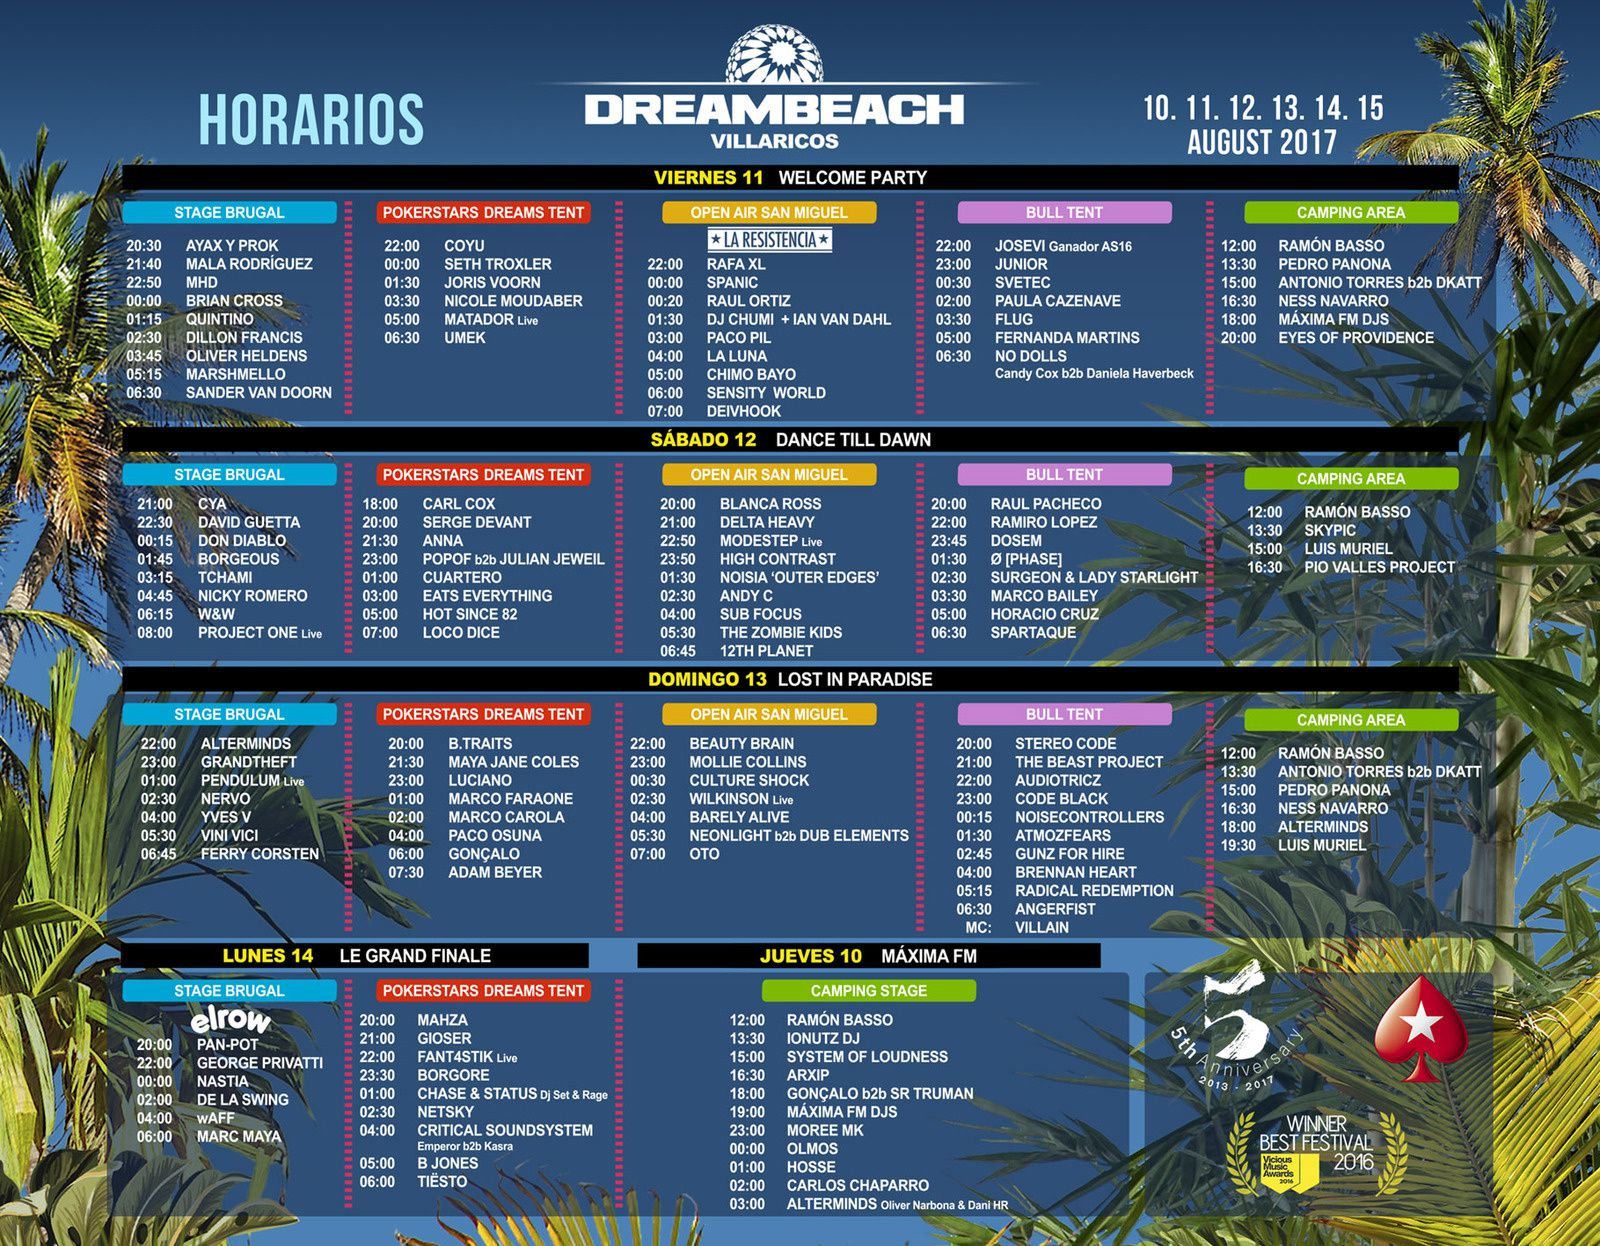 Tiësto date | Dreambeach | Villaricos, Spain - August 14, 2017 | Timetable